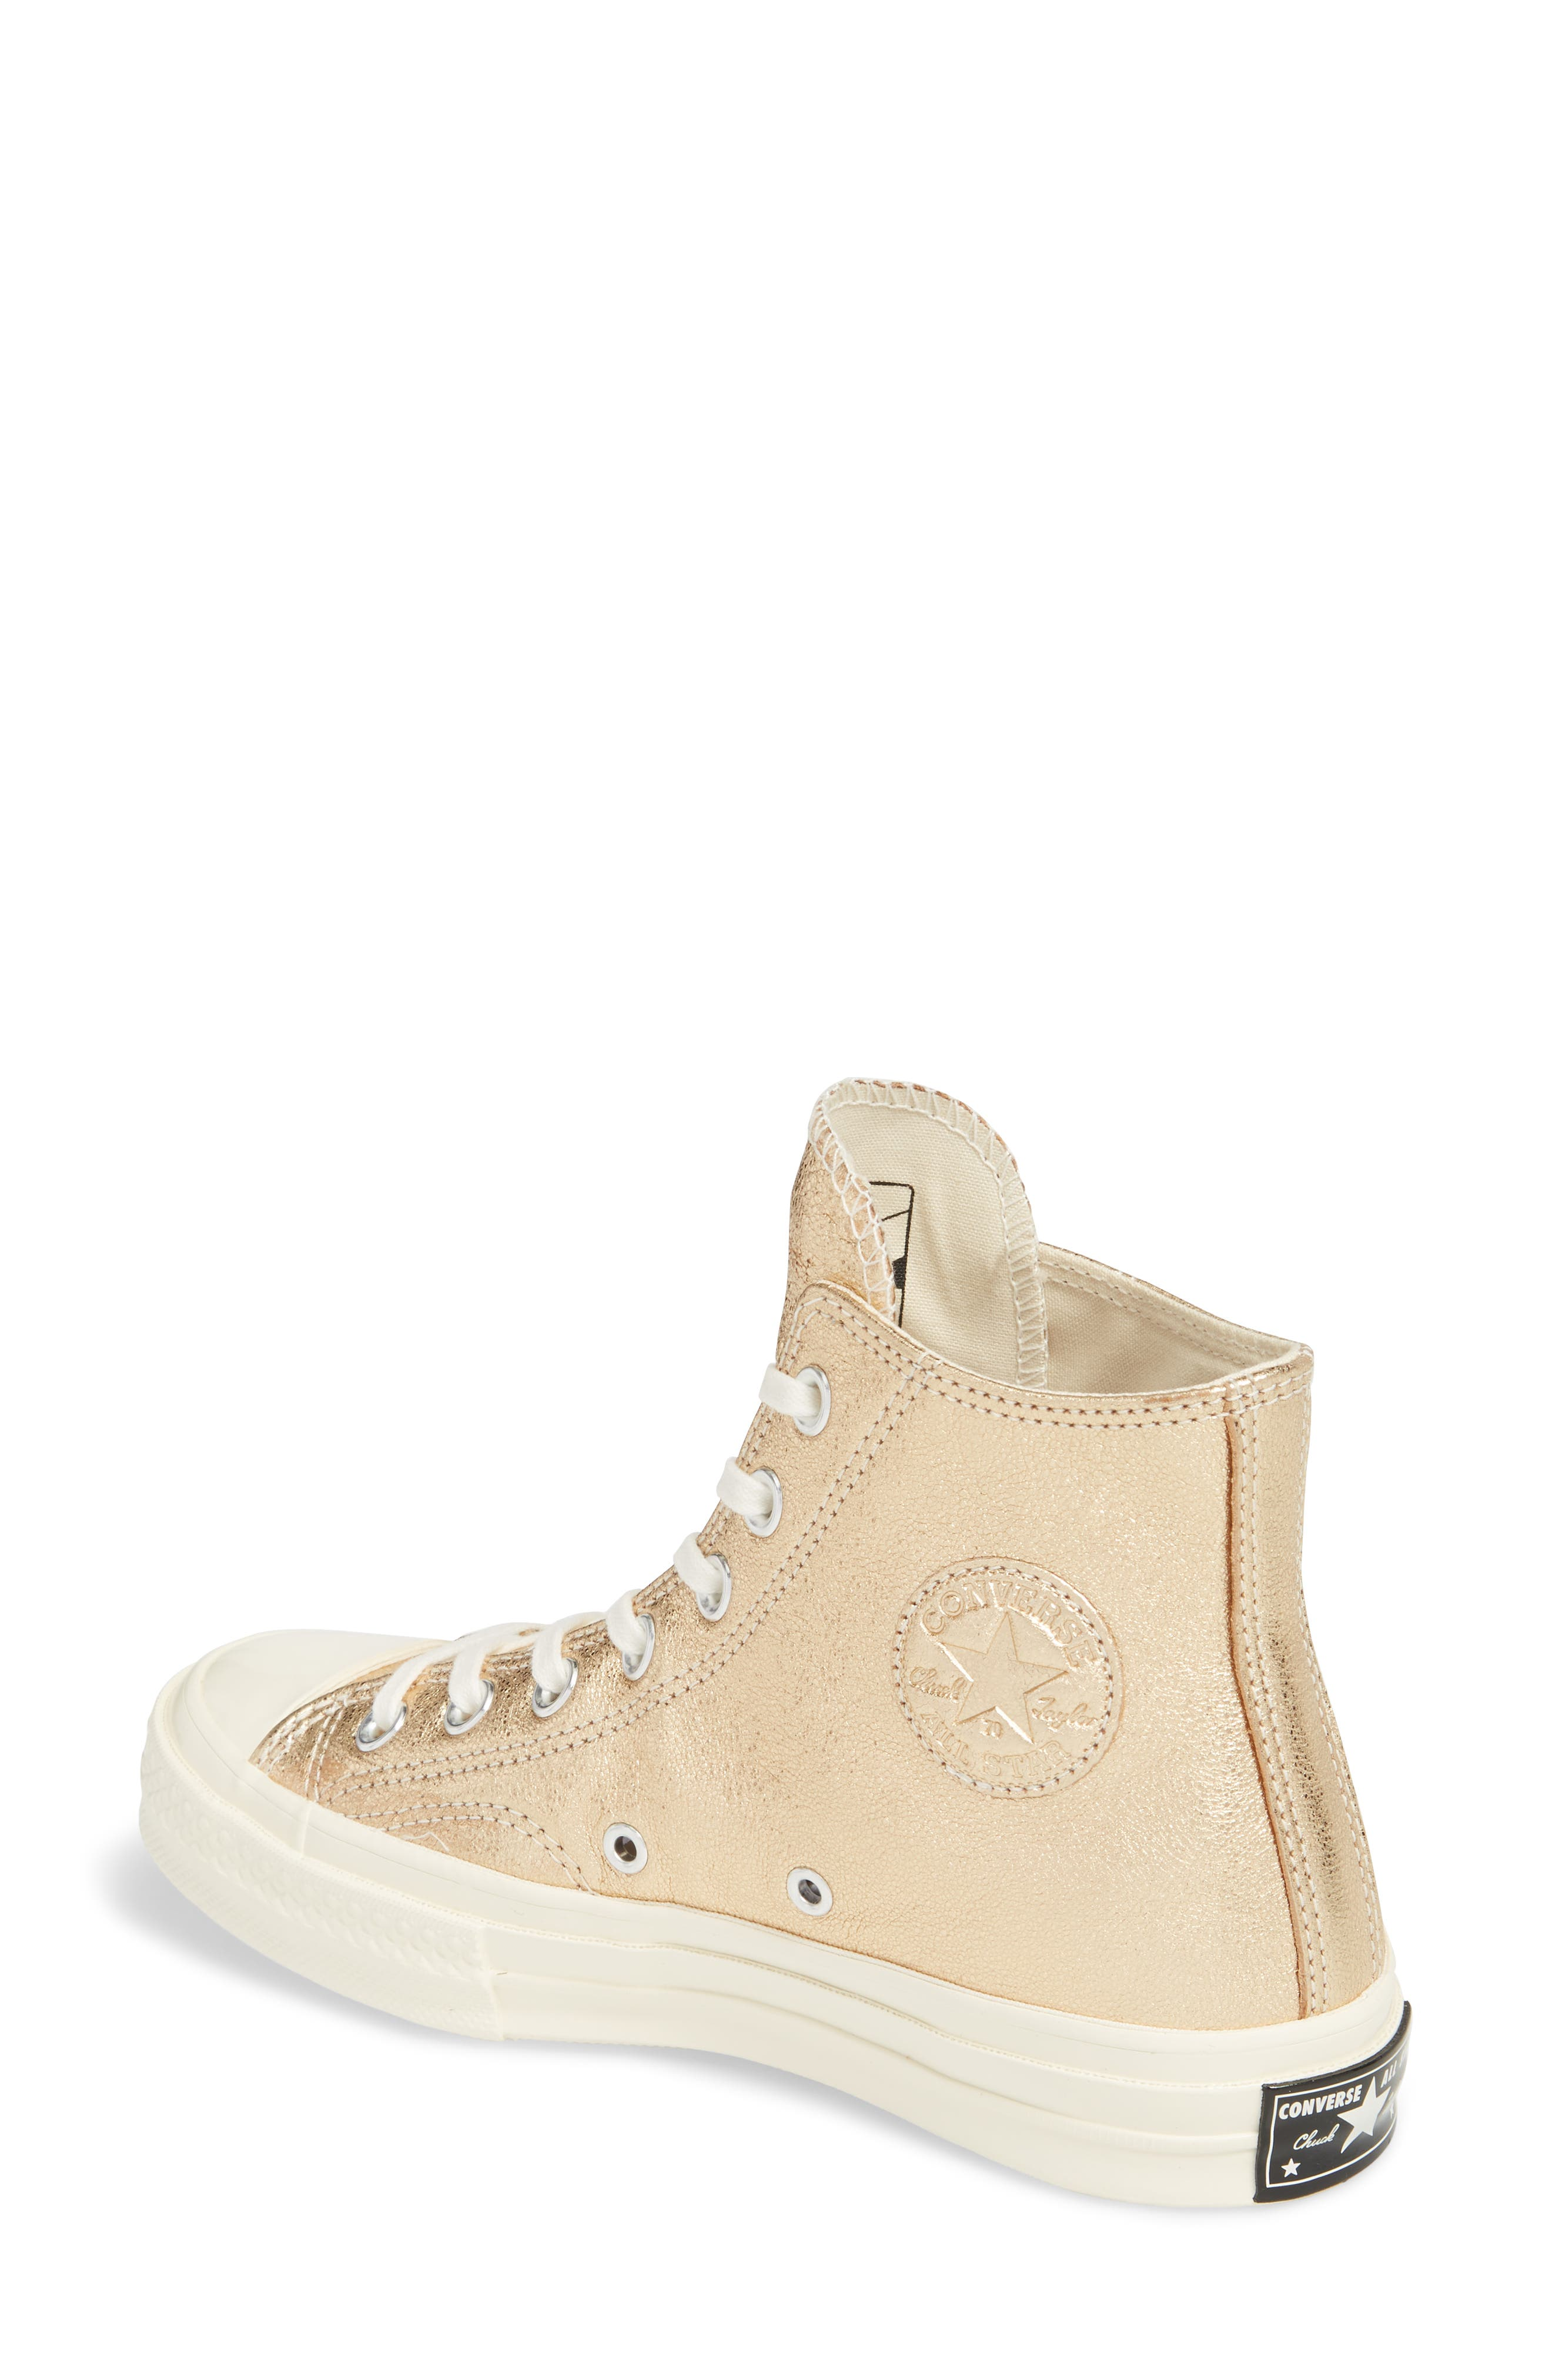 Chuck Taylor<sup>®</sup> All Star<sup>®</sup> Heavy Metal 70 High Top Sneaker,                             Alternate thumbnail 6, color,